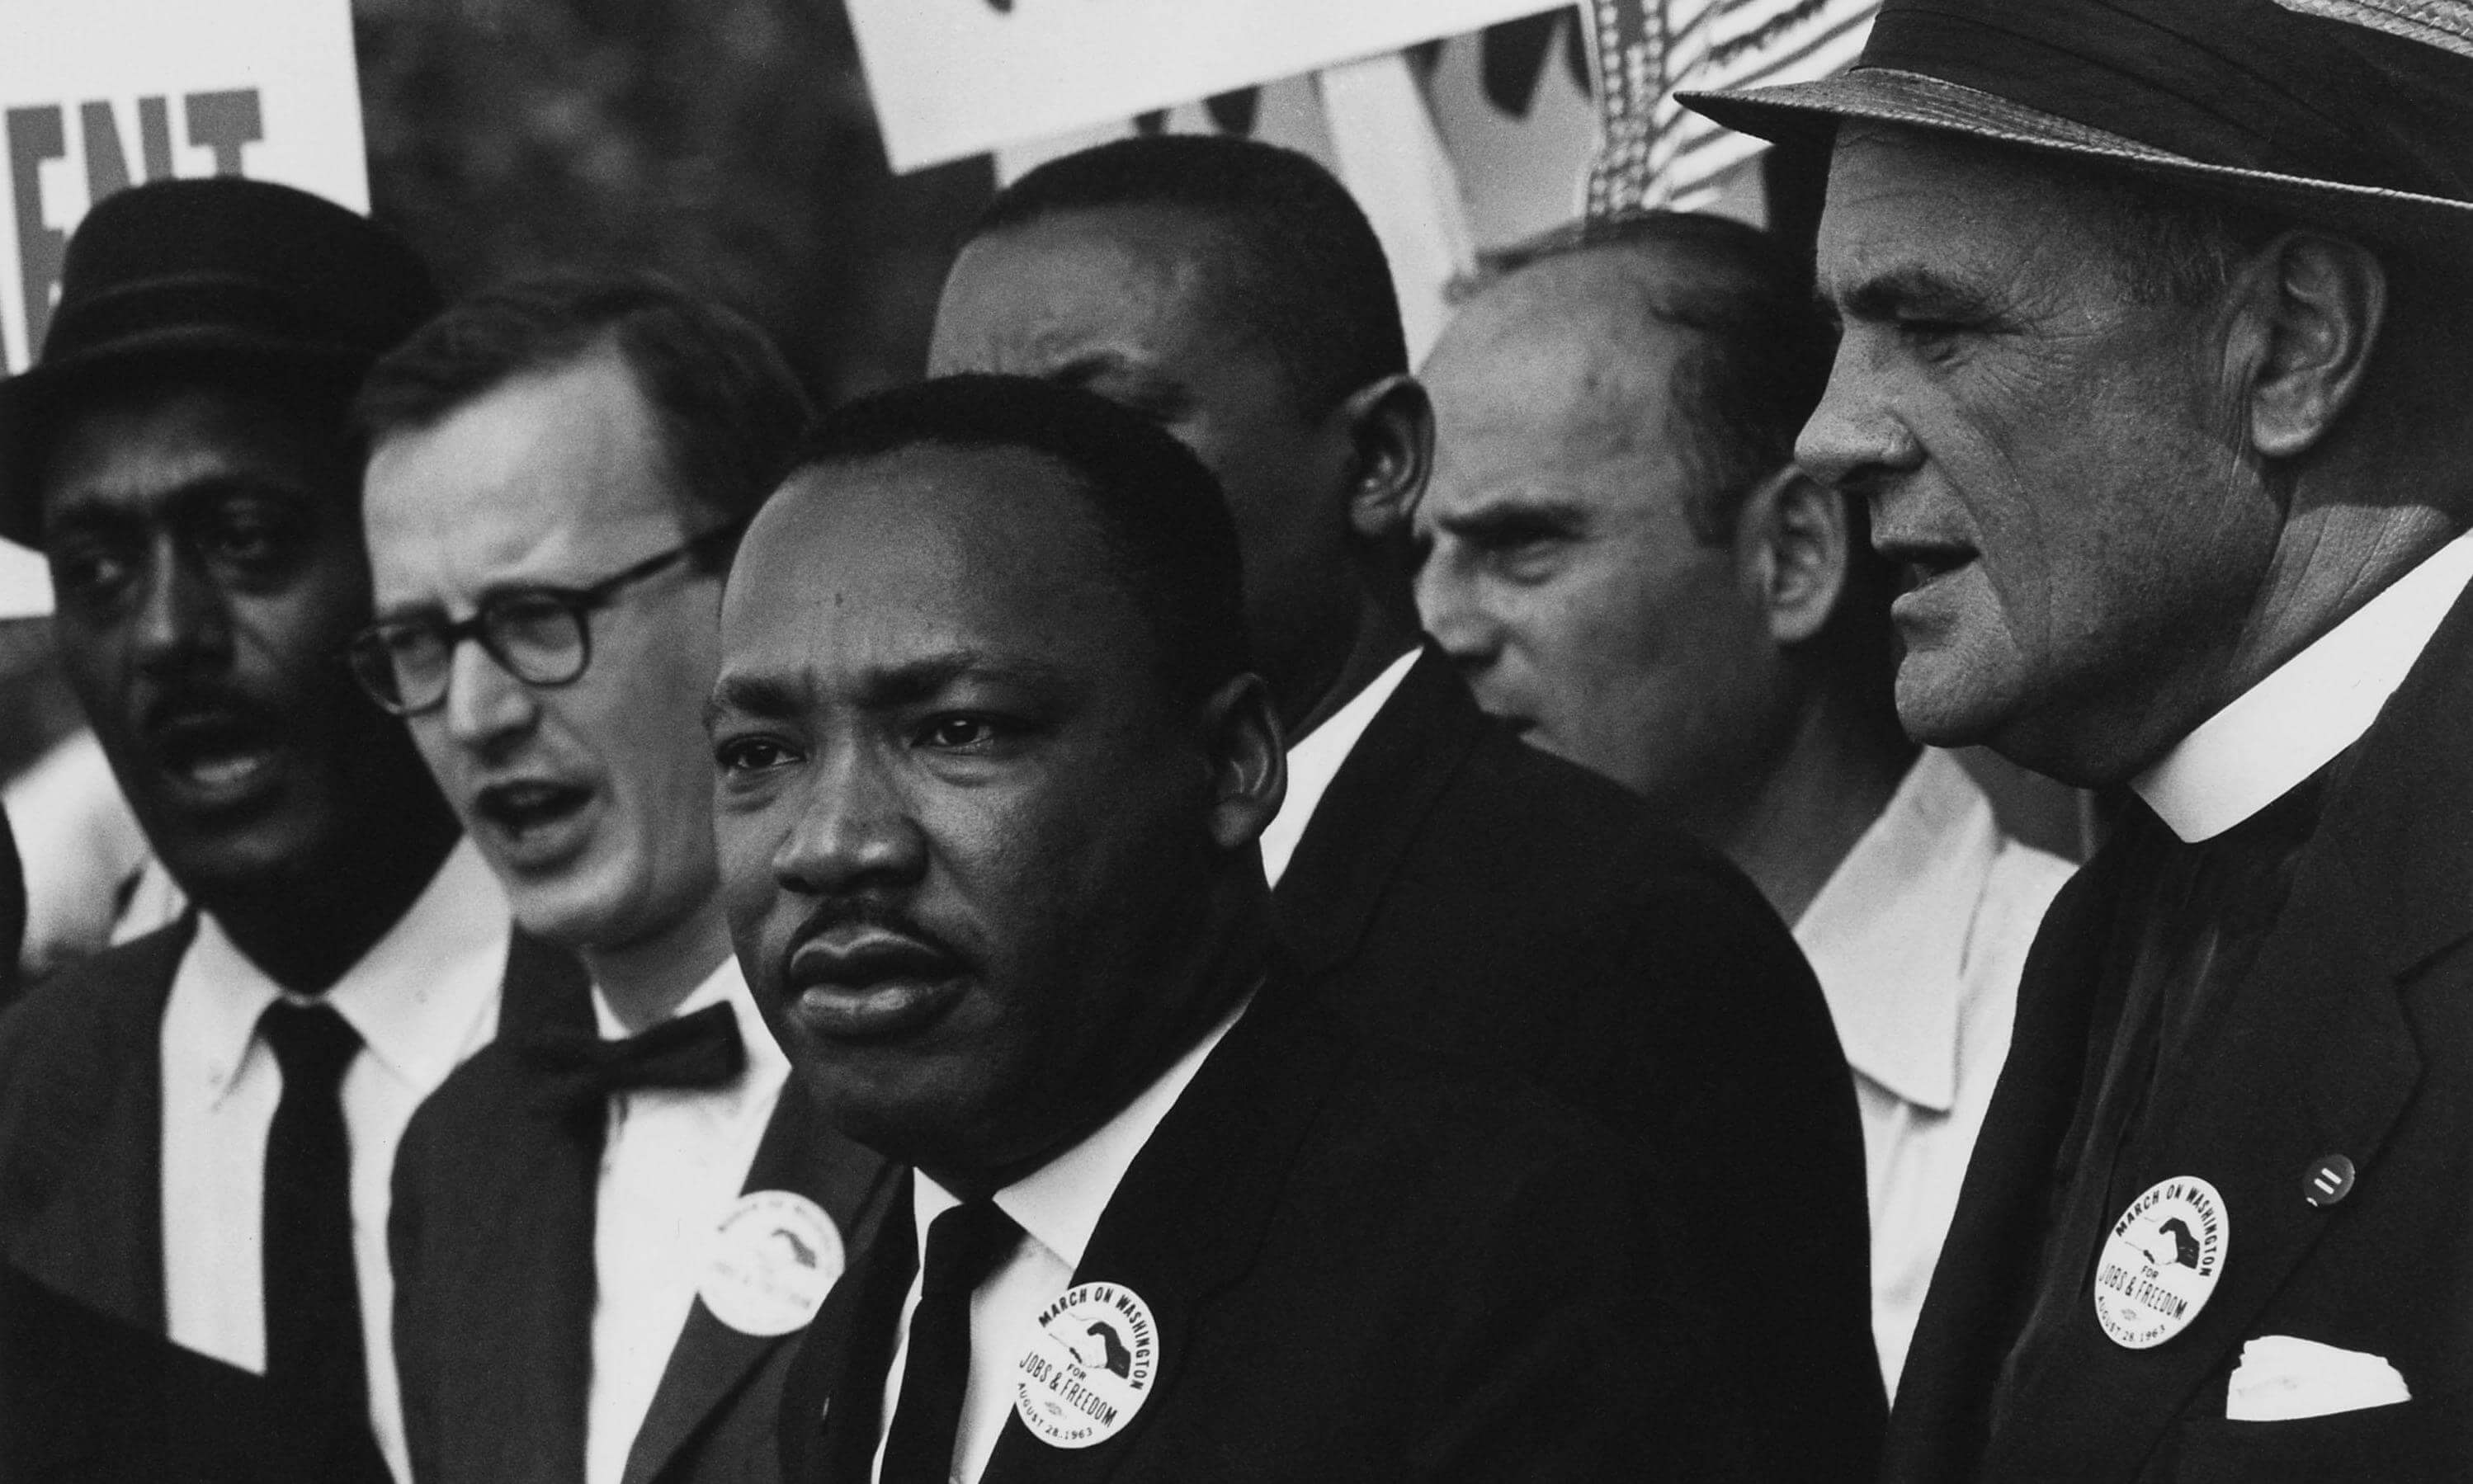 Martin Luther King and other leaders of the March singing on the steps of the Lincoln Memorial